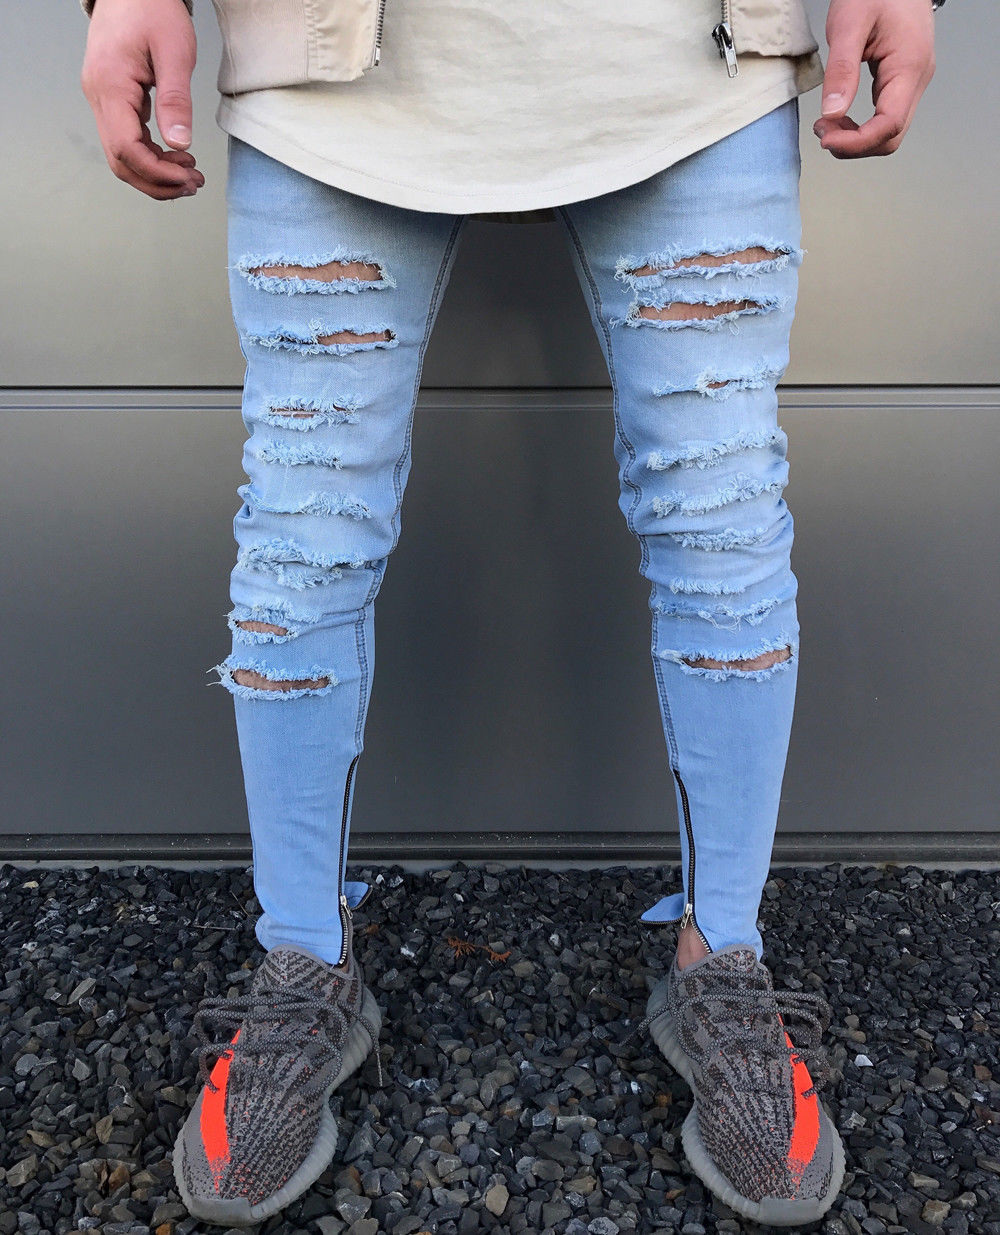 Fashion Men Ripped Skinny Hole Jeans Destroyed Frayed Slim Fit Denim Pants Stylish Mens Fake Zipper Pencil Denim Jeans new brand hi street for men ripped biker jeans hip hop skinny slim fit black denim pants destroyed swag joggers kanye west